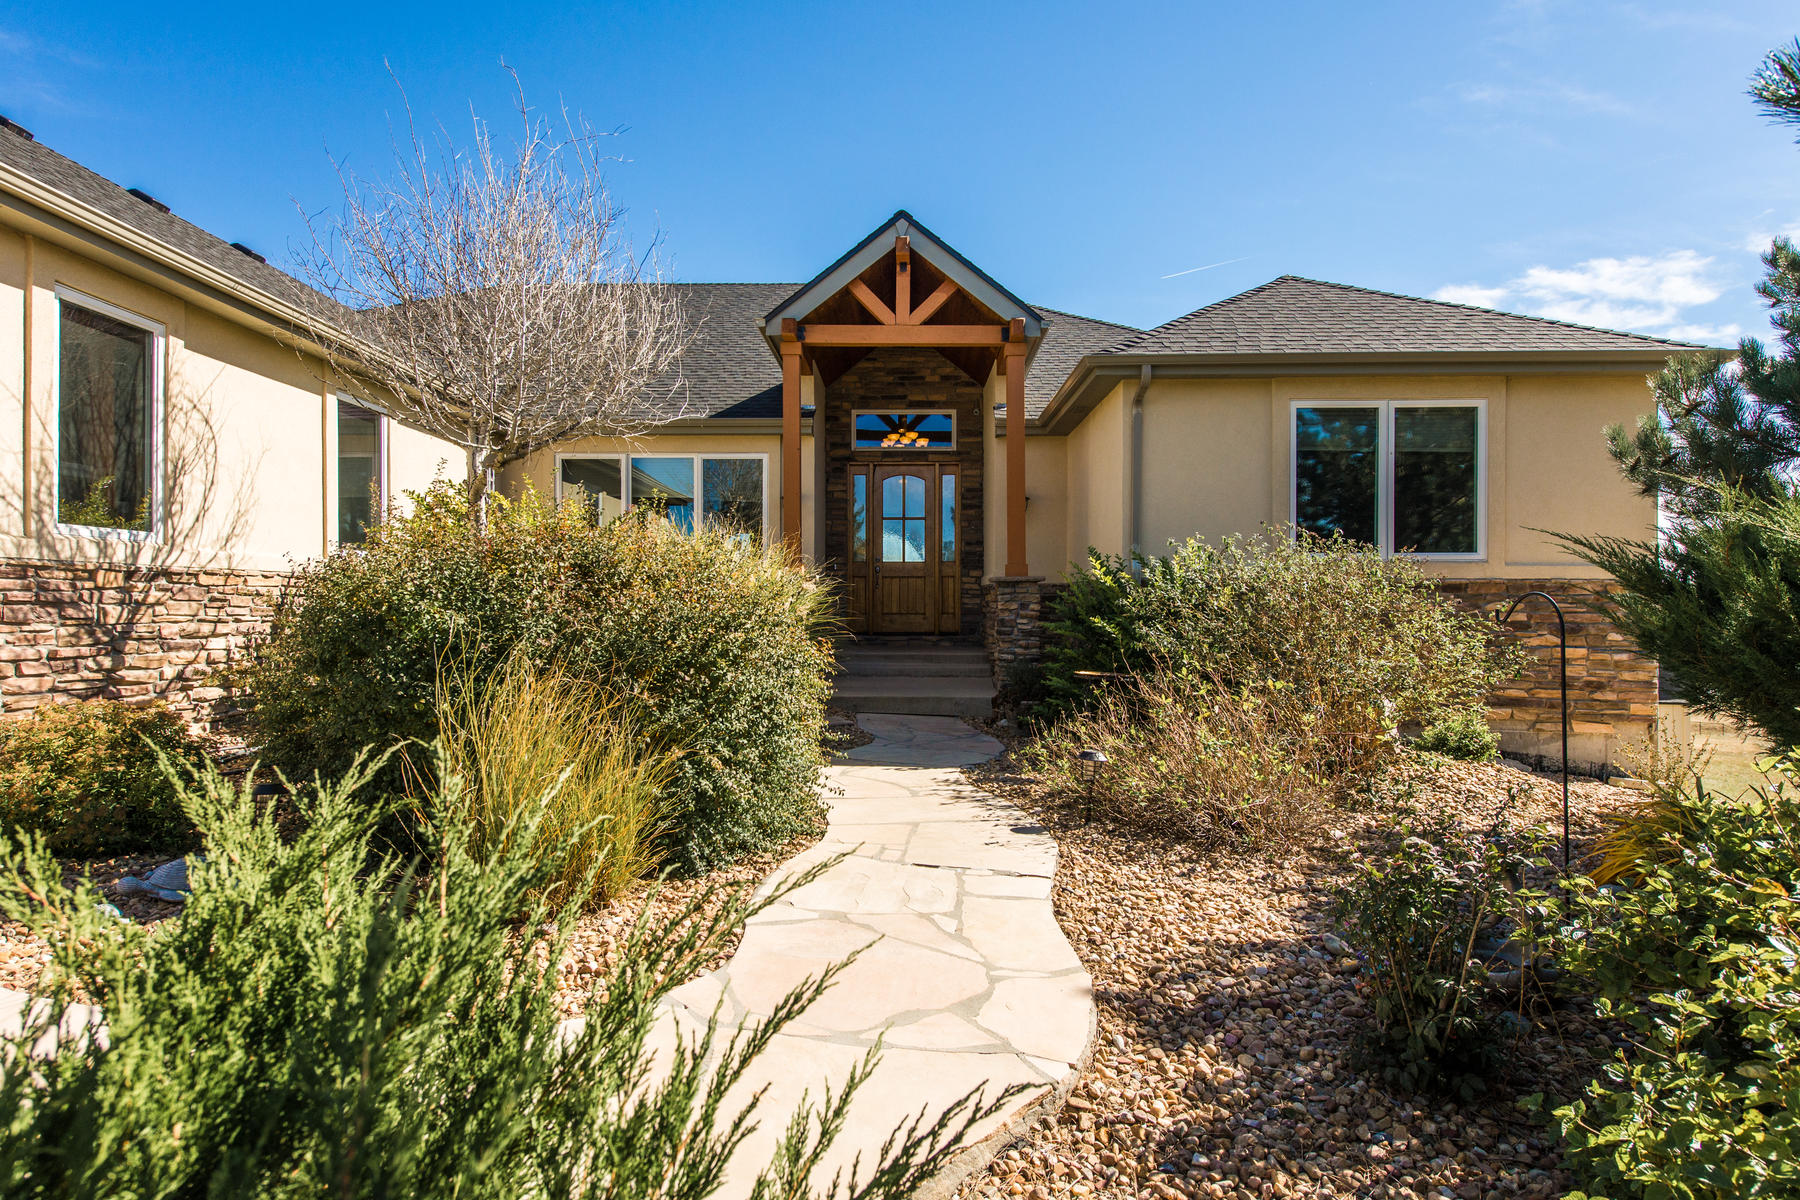 Single Family Home for Active at Beautiful Custom Ranch Style Home On 10 Acres! 47992 Monarch Circle Parker, Colorado 80138 United States